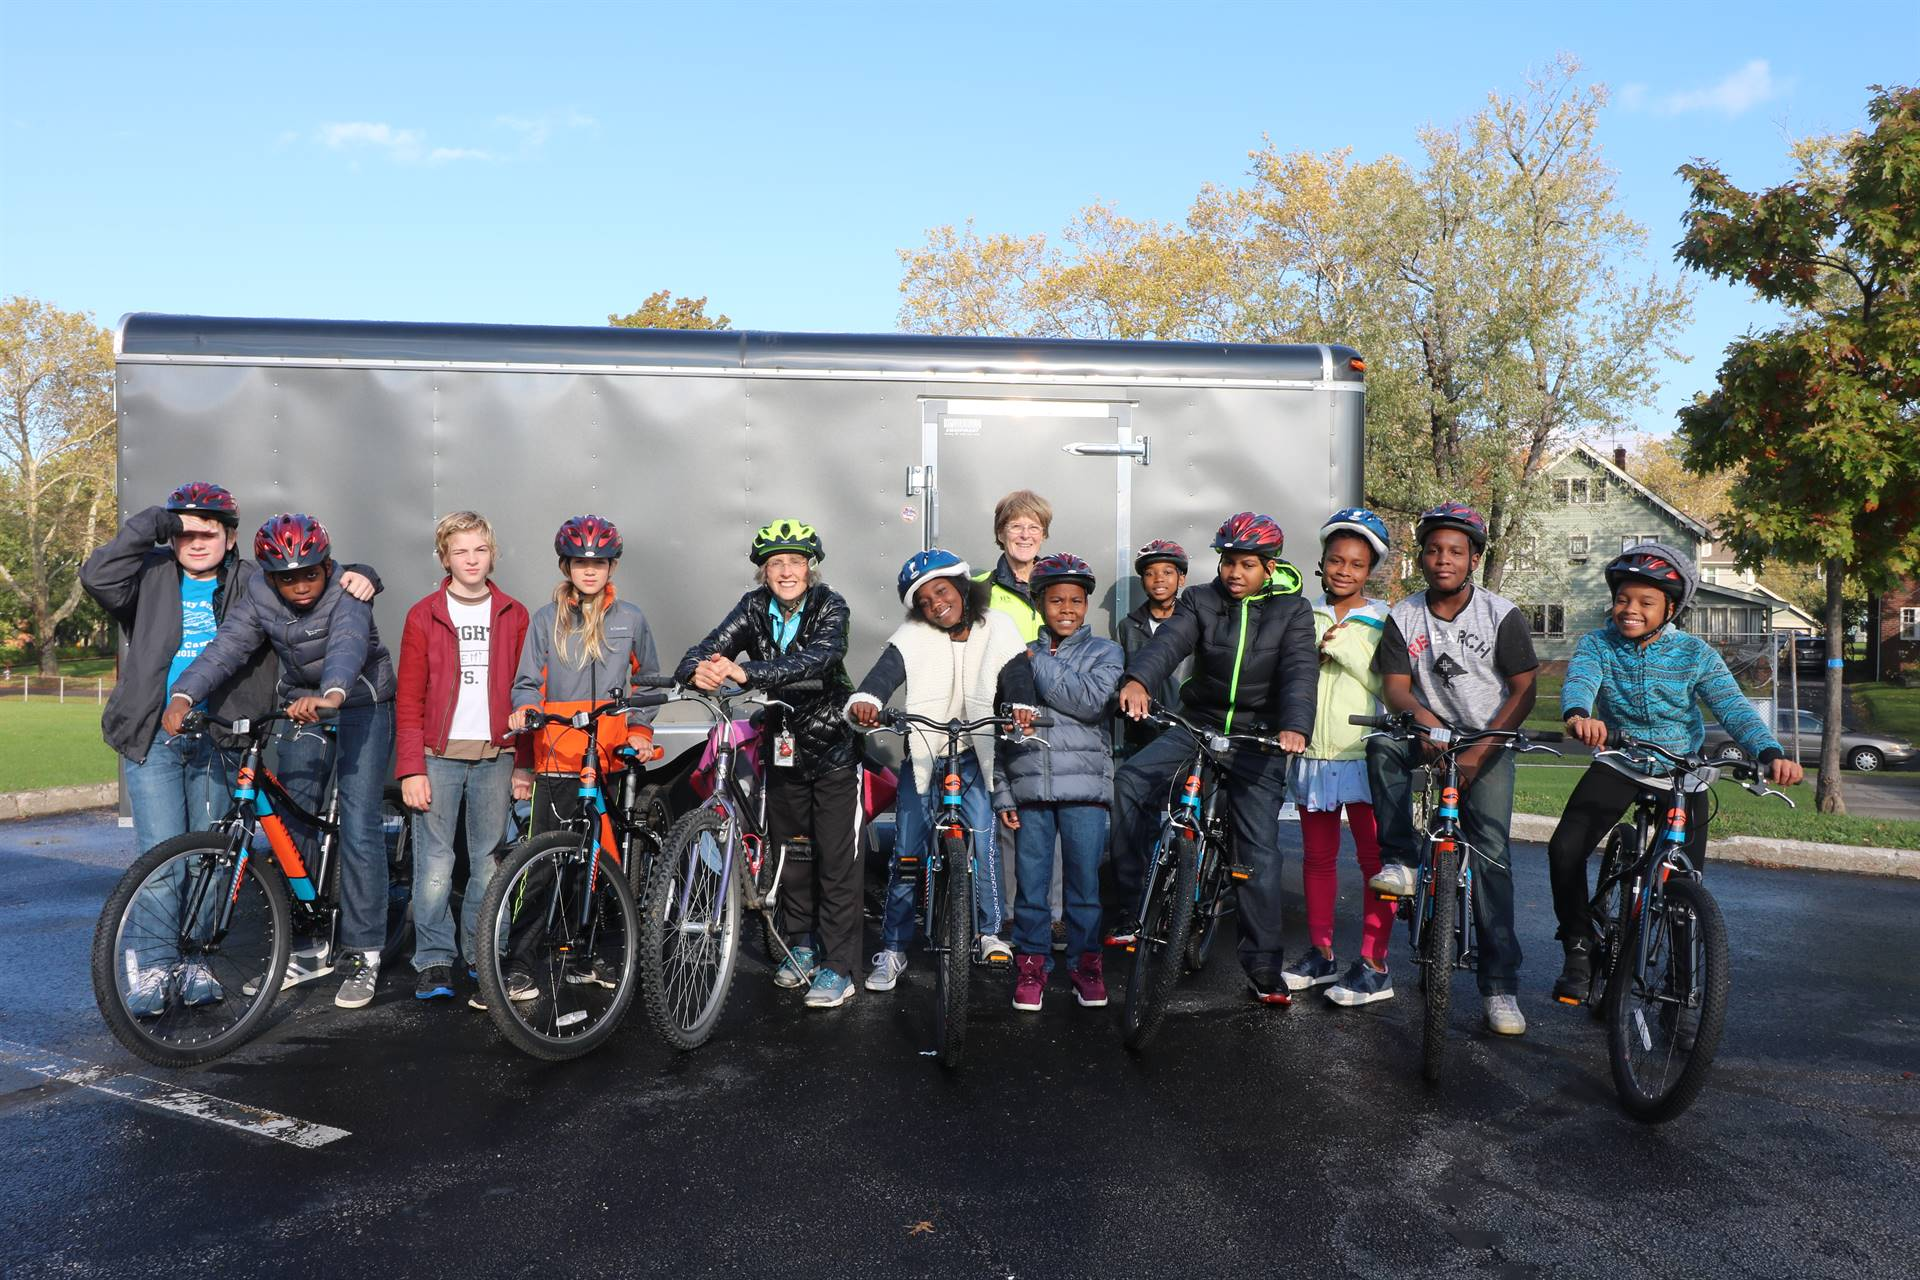 Ms. Stratton's Class Uses Bike Fleet